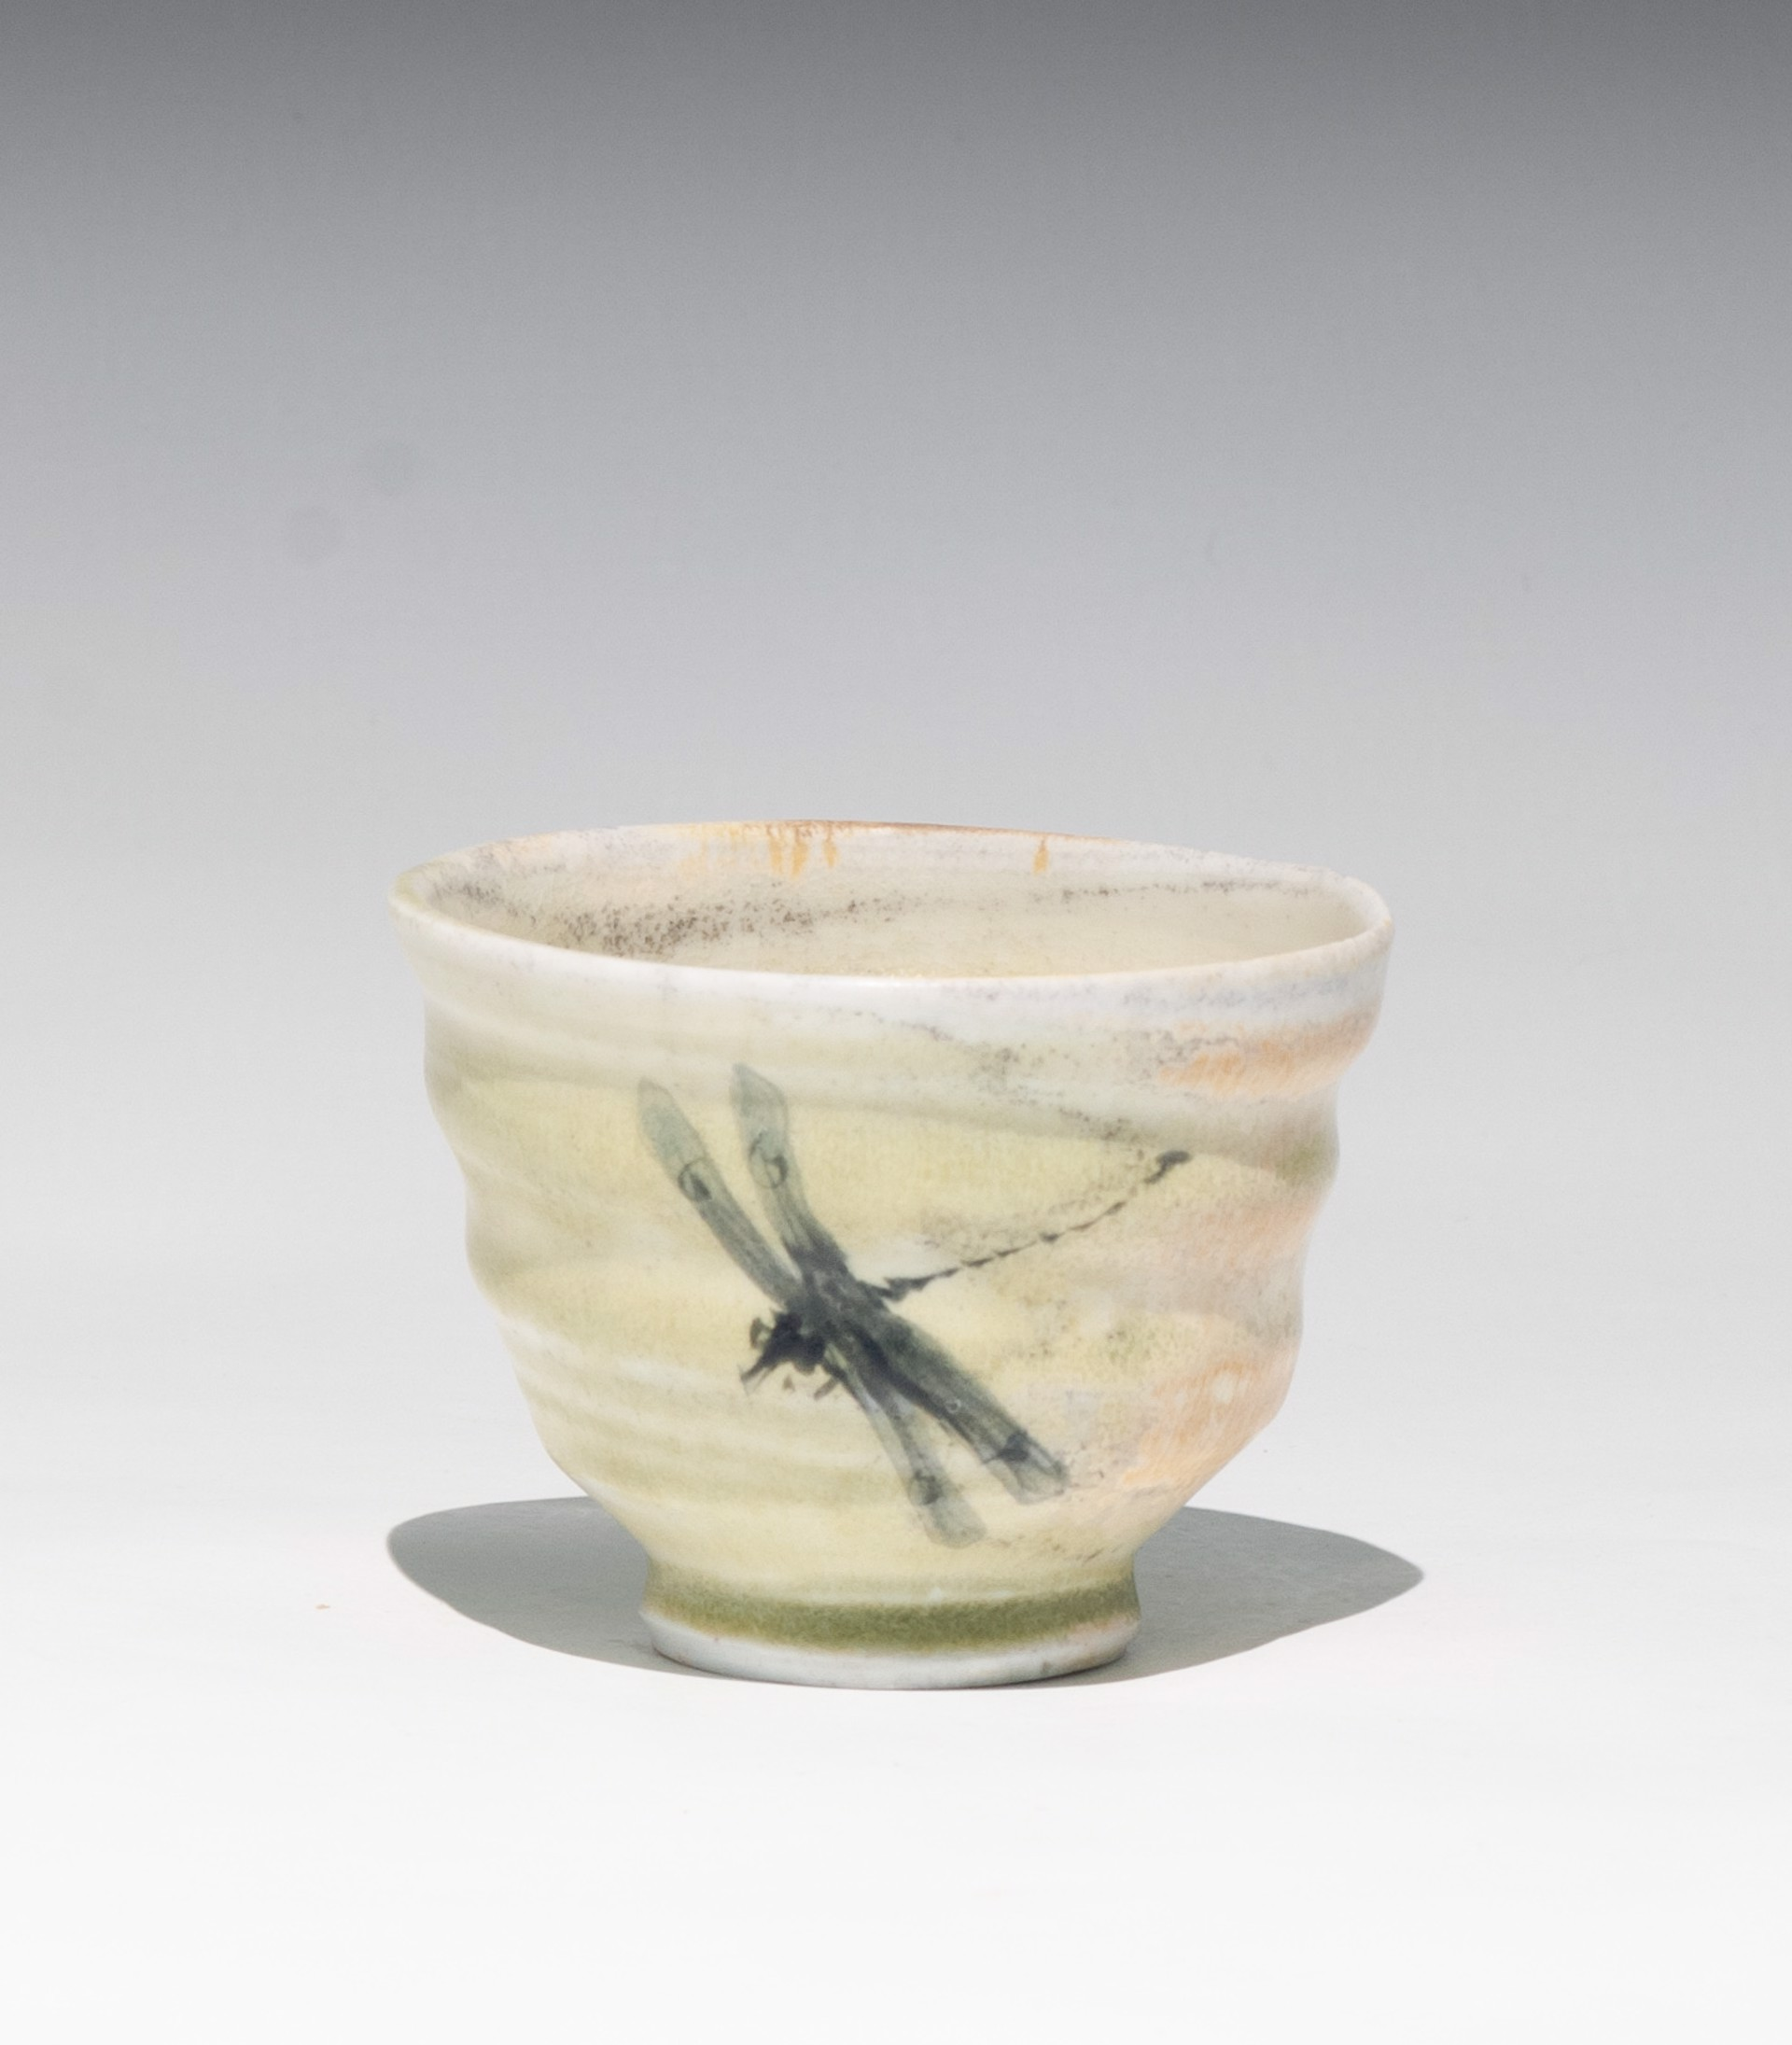 Insect Tea Bowl 1 by Caroline Bottom Anderson